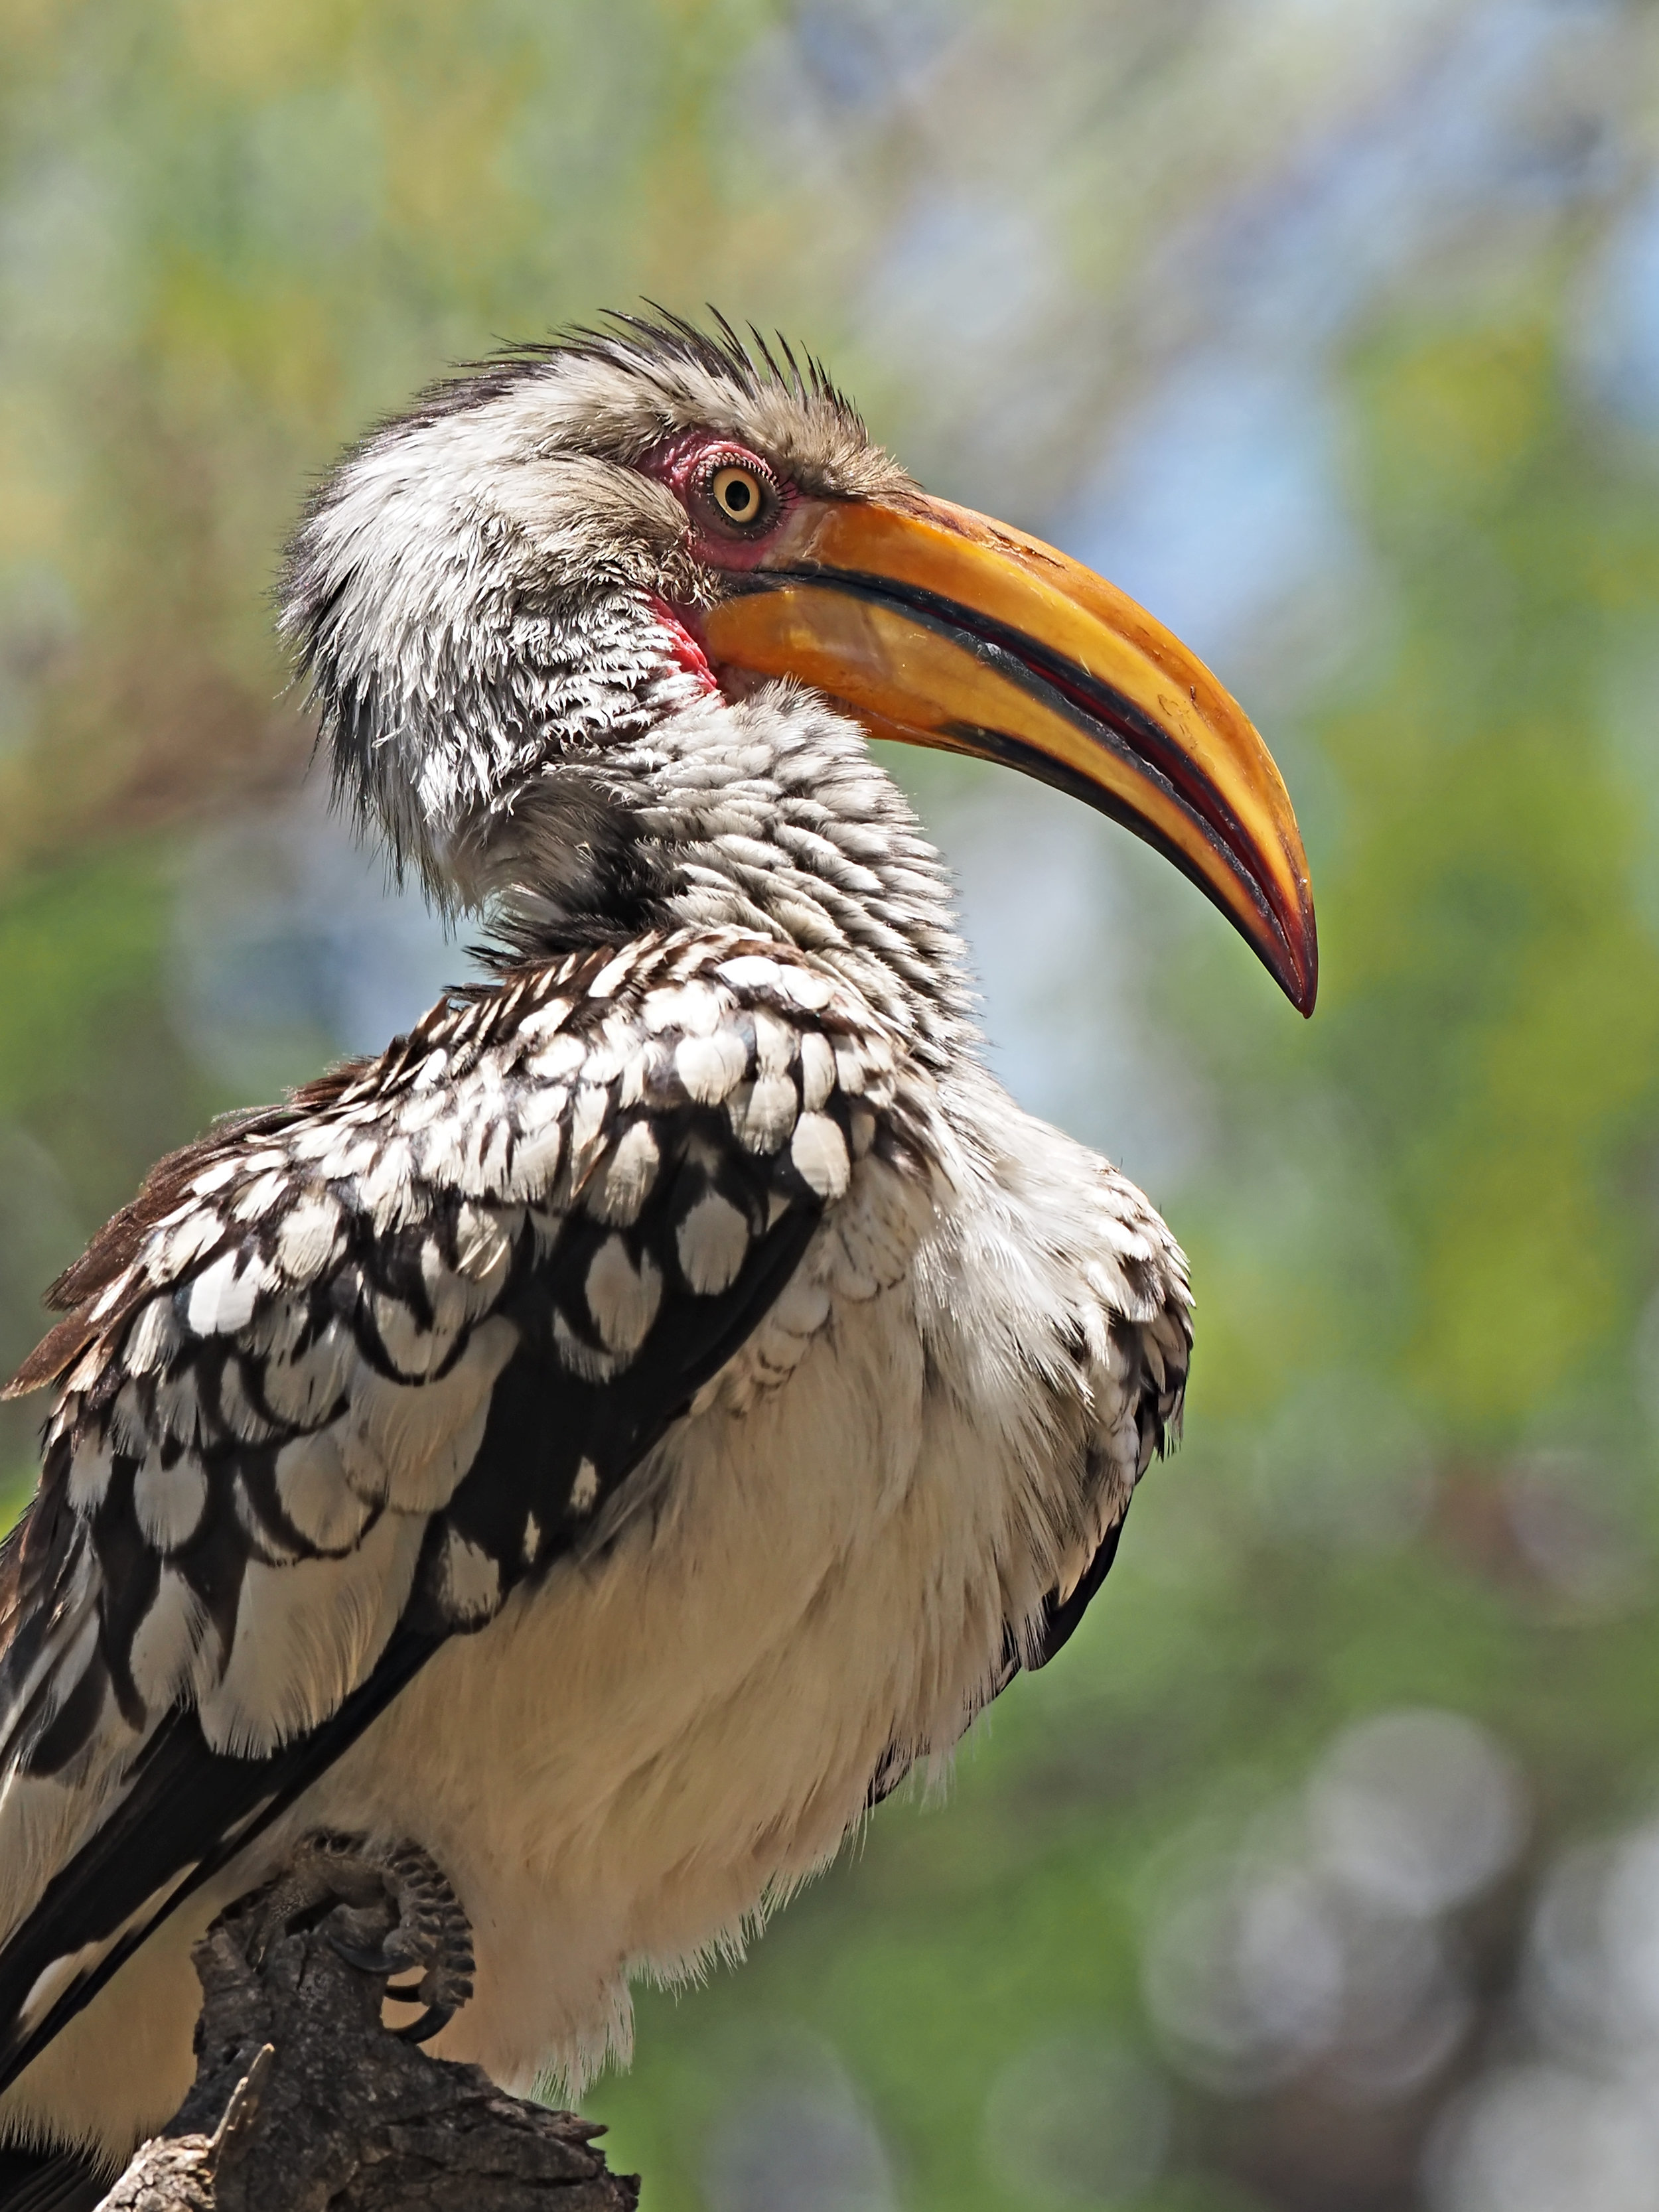 Ranjan_Ramchandani_The Hornbill.jpg